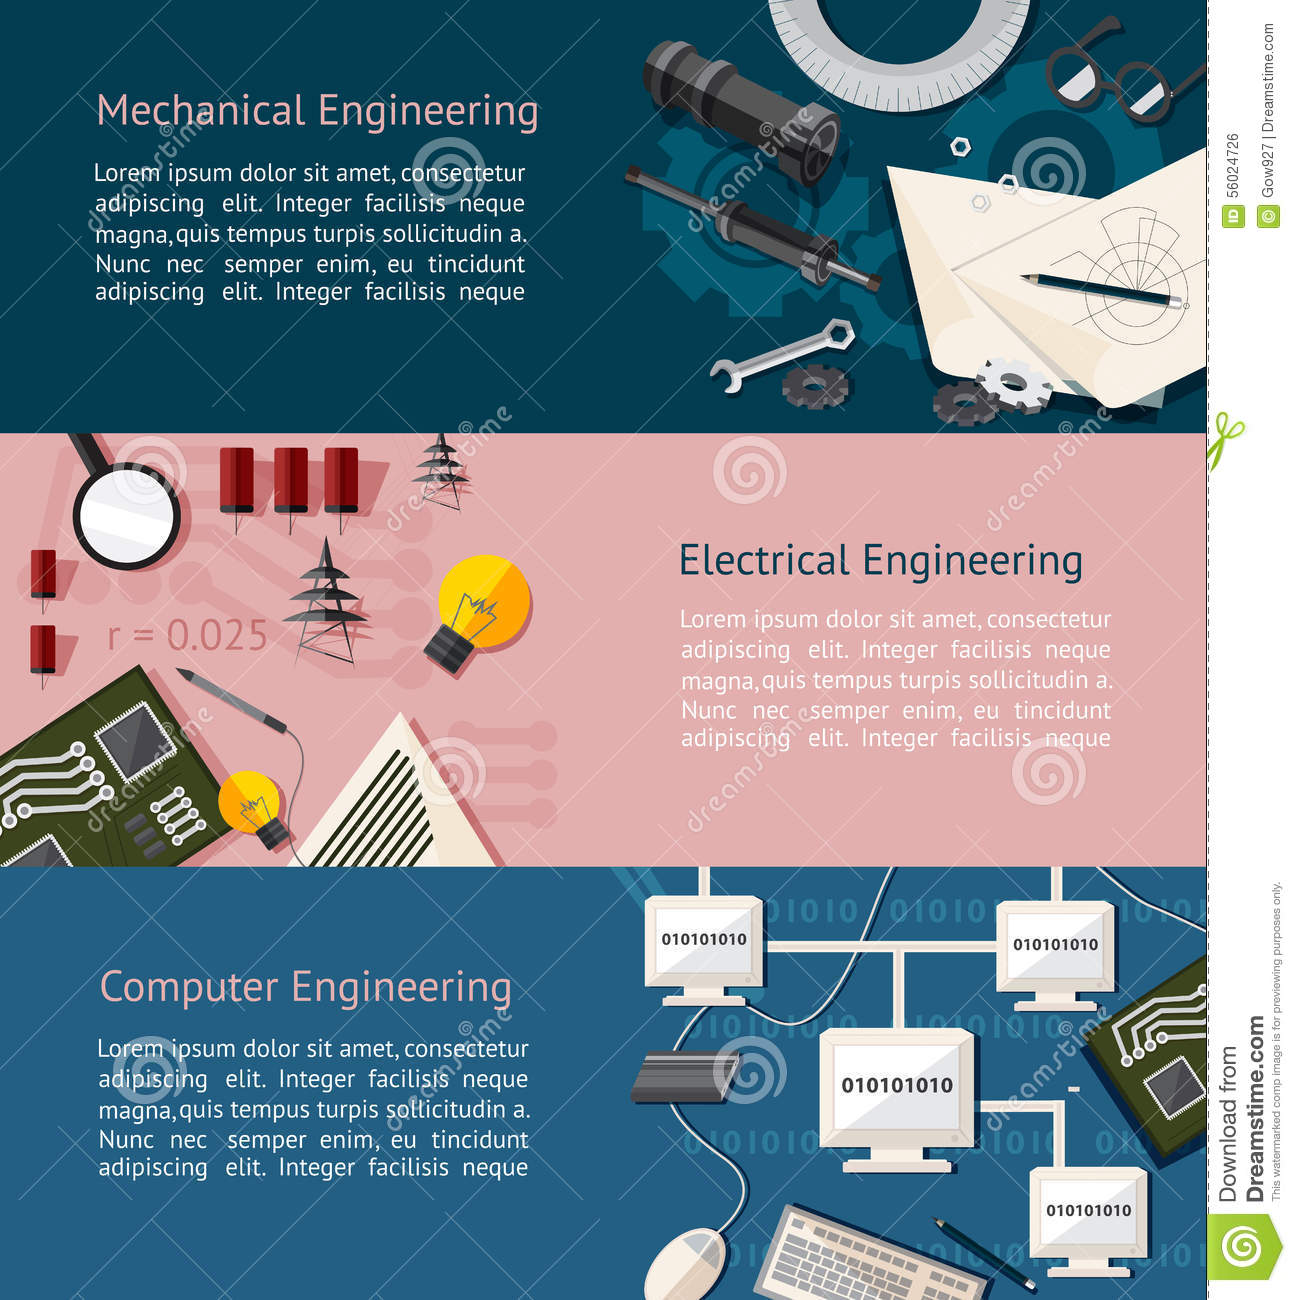 Mechanical Engineering Design Demographics